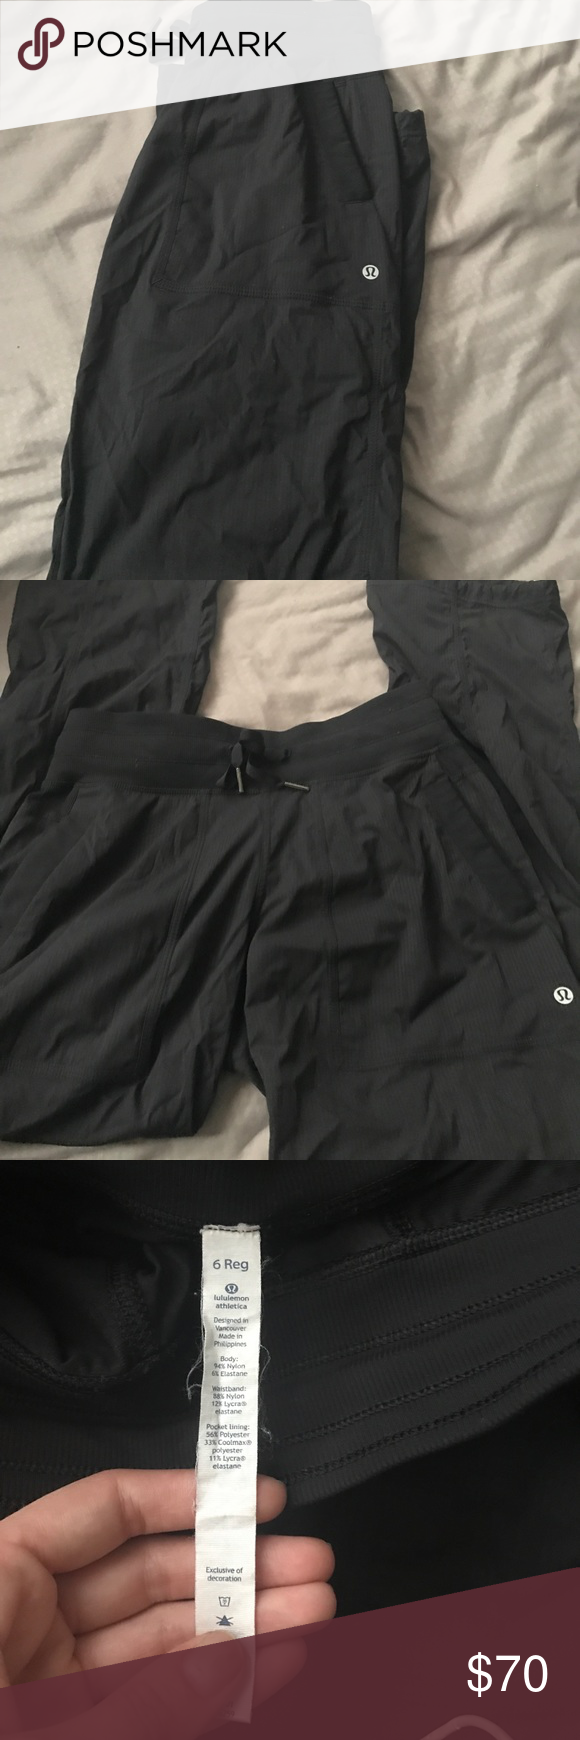 Lululemon joggers Joggers black Other